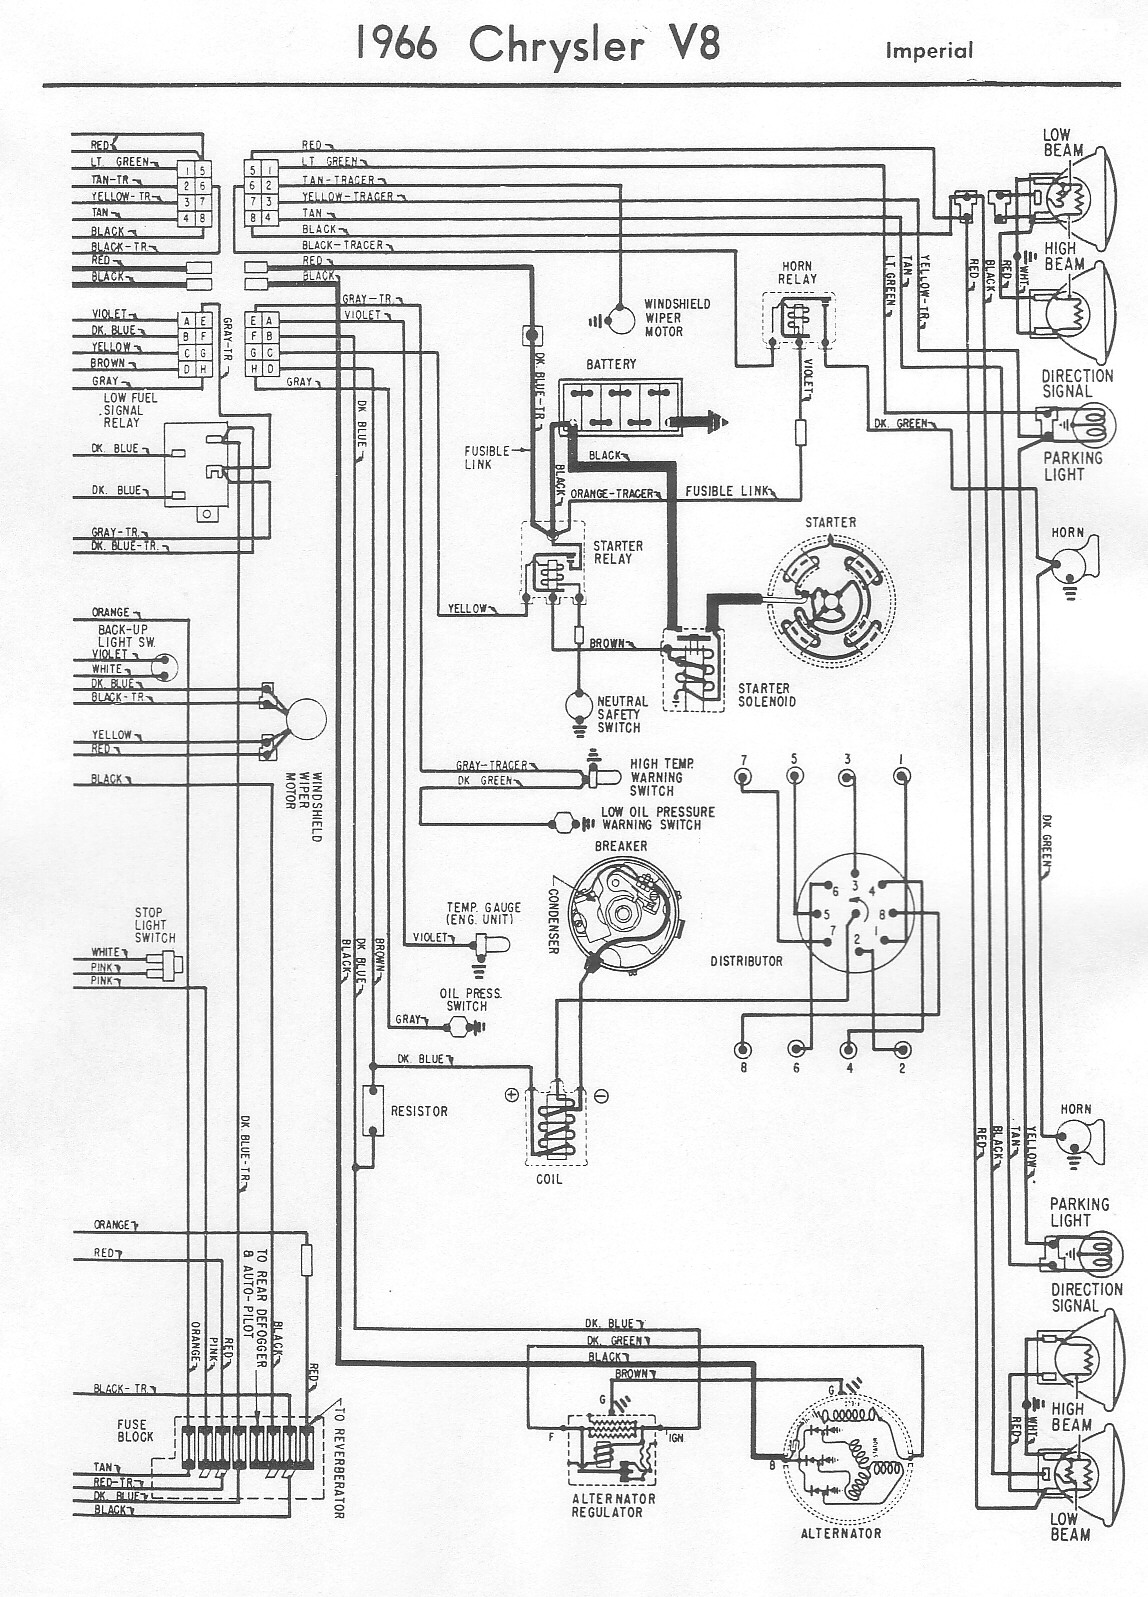 October 2014 Circuit Diagram For Learning Wiring Elektro Motor Engine Compartment Of 1970 Plymouth Belvedere Gtx